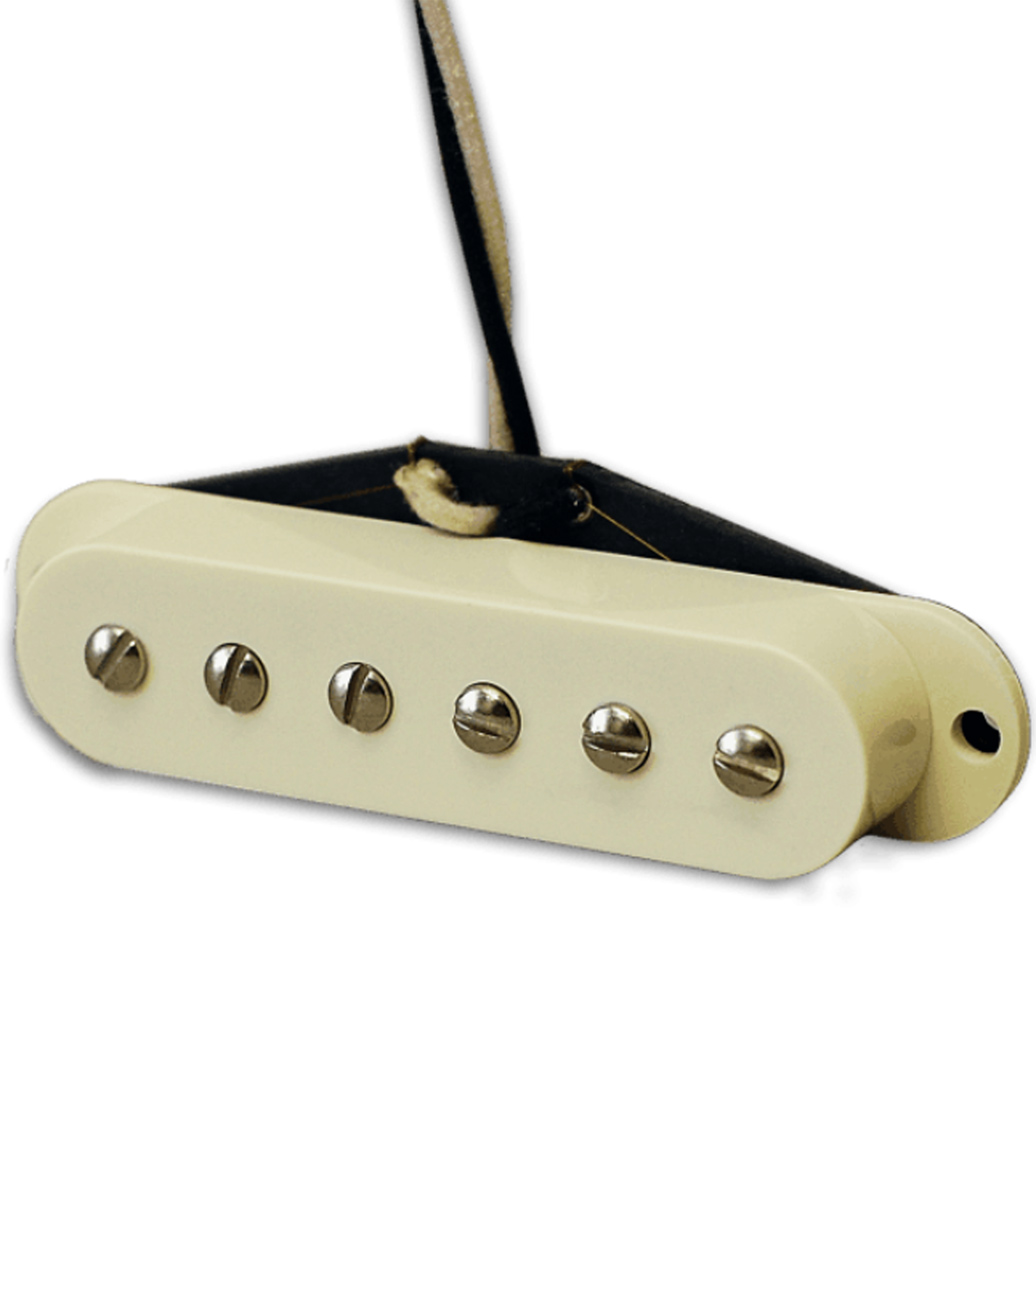 Lindy Fralin Steel Pole 42 Stratocaster Bridge pickup